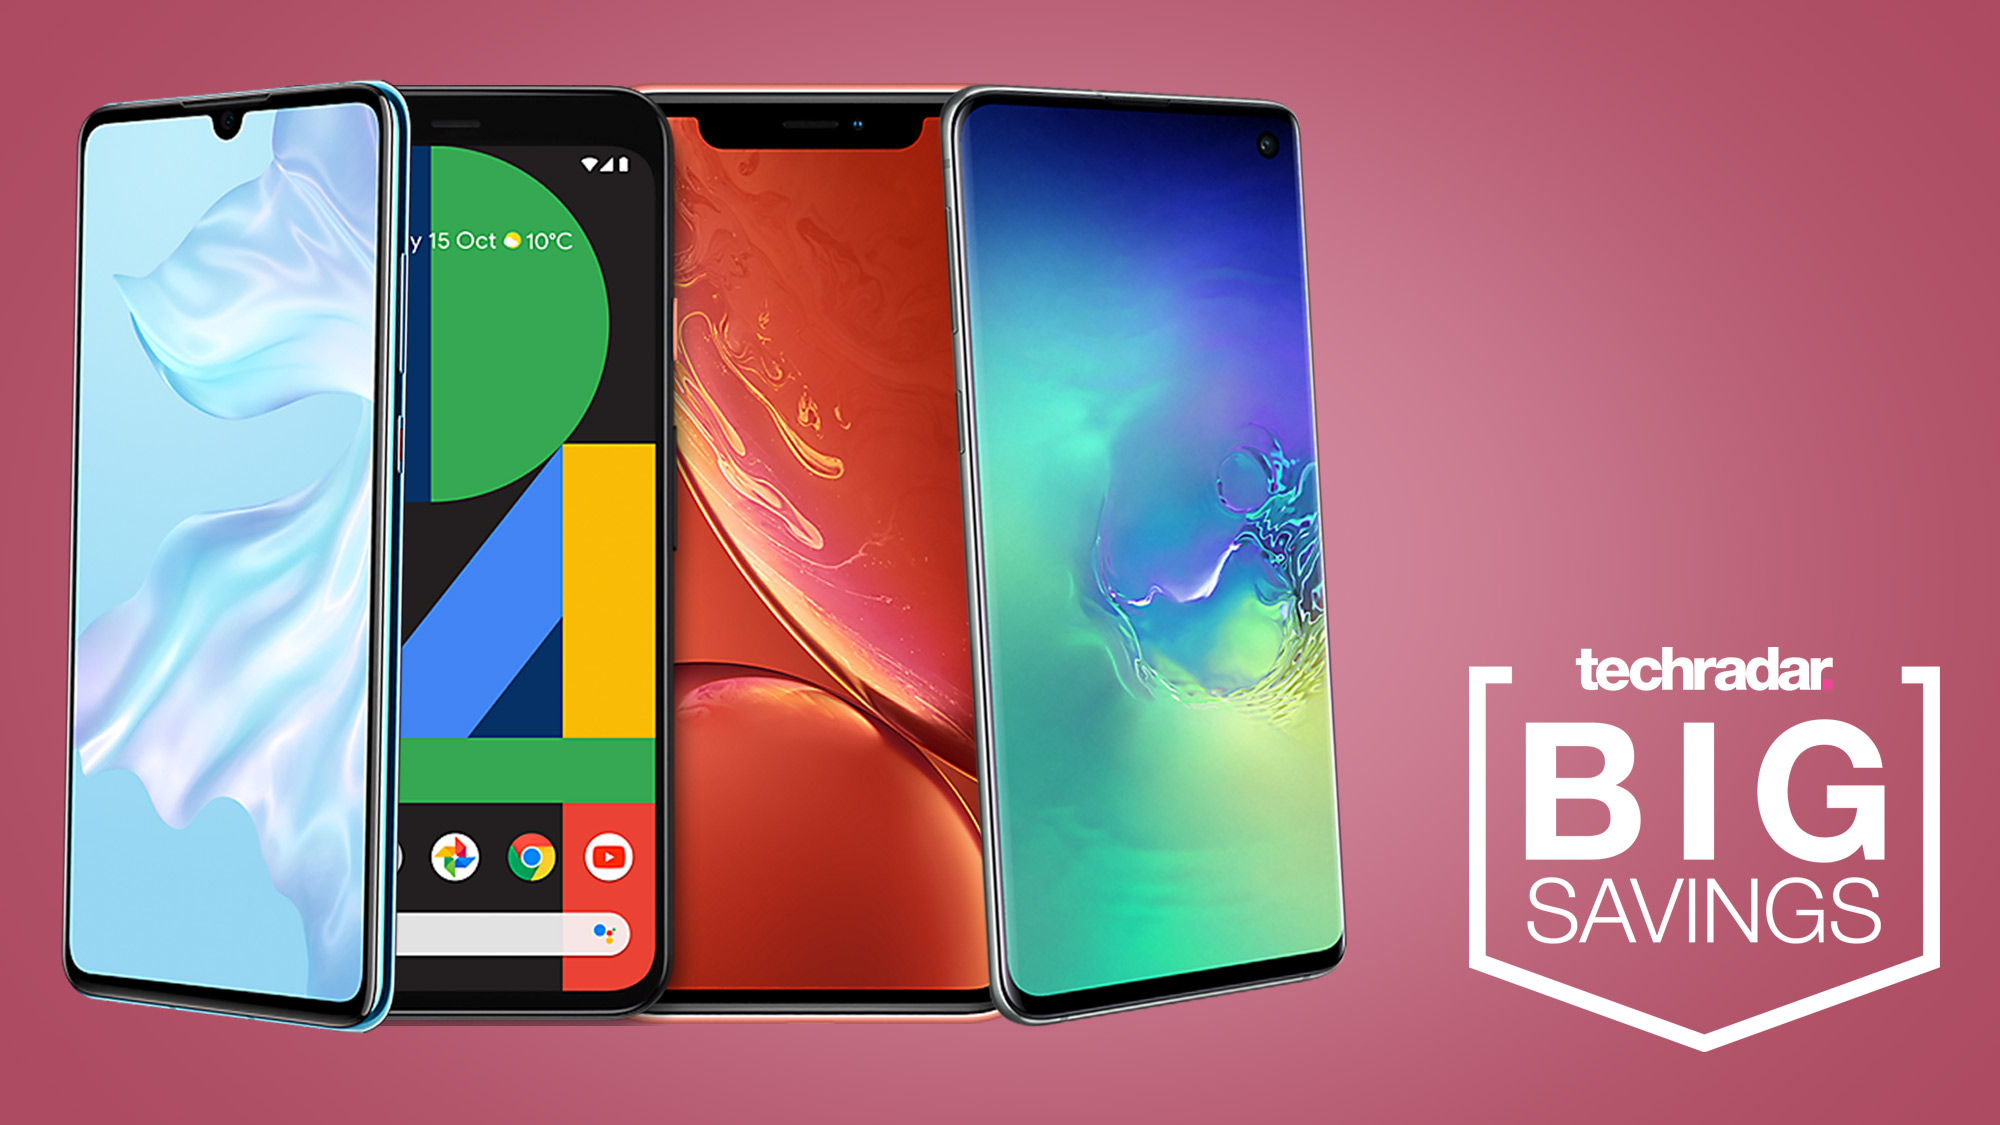 Cut £15 off the price of a range of EE phone deals with this Mobiles.co.uk code